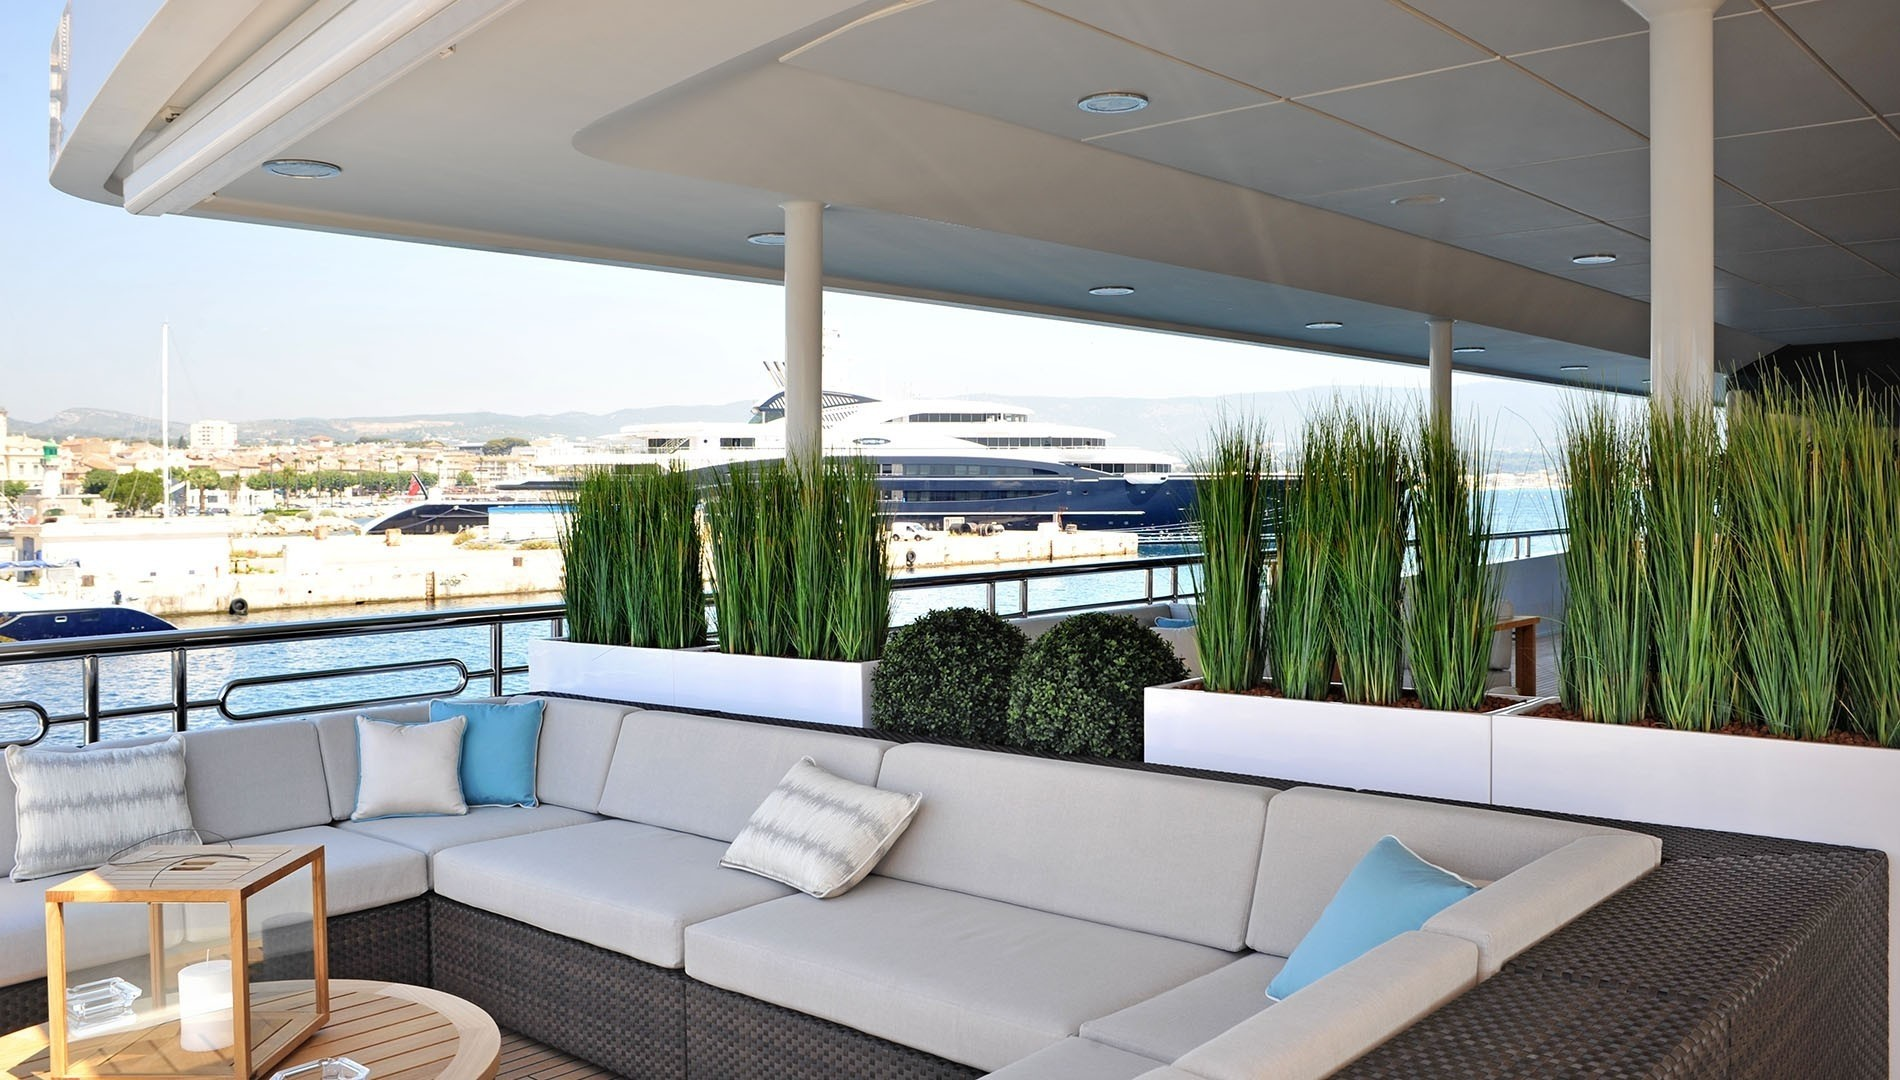 exterior aft seating area